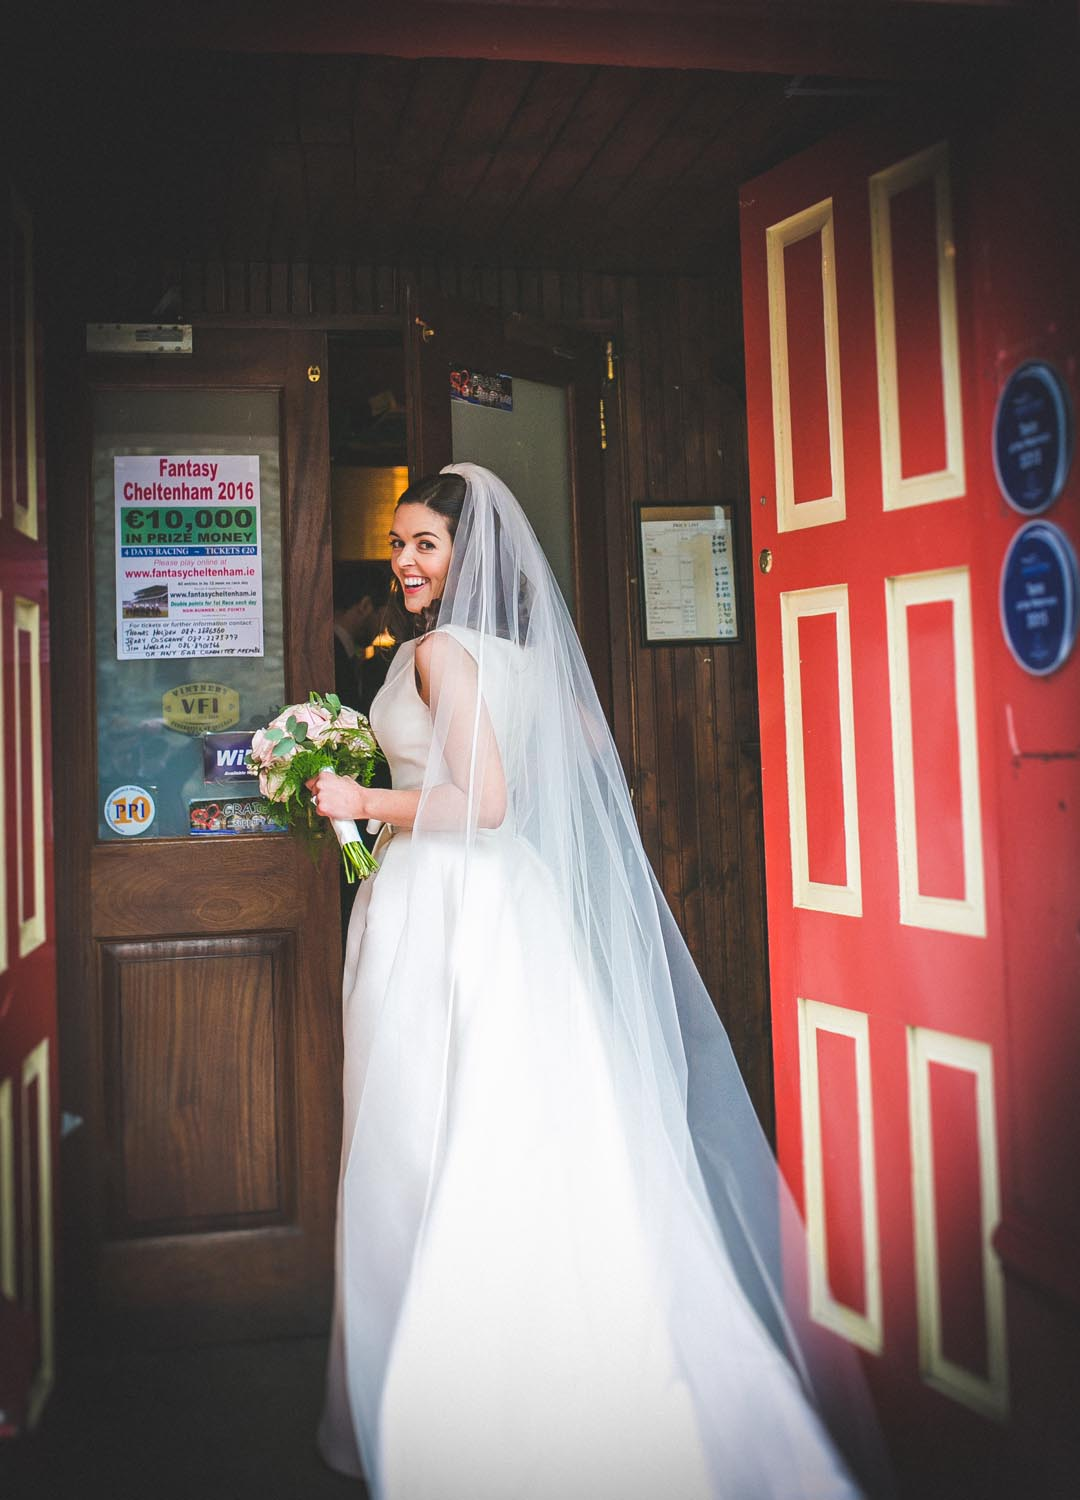 Step House wedding photographer Carlow Borris079.jpg